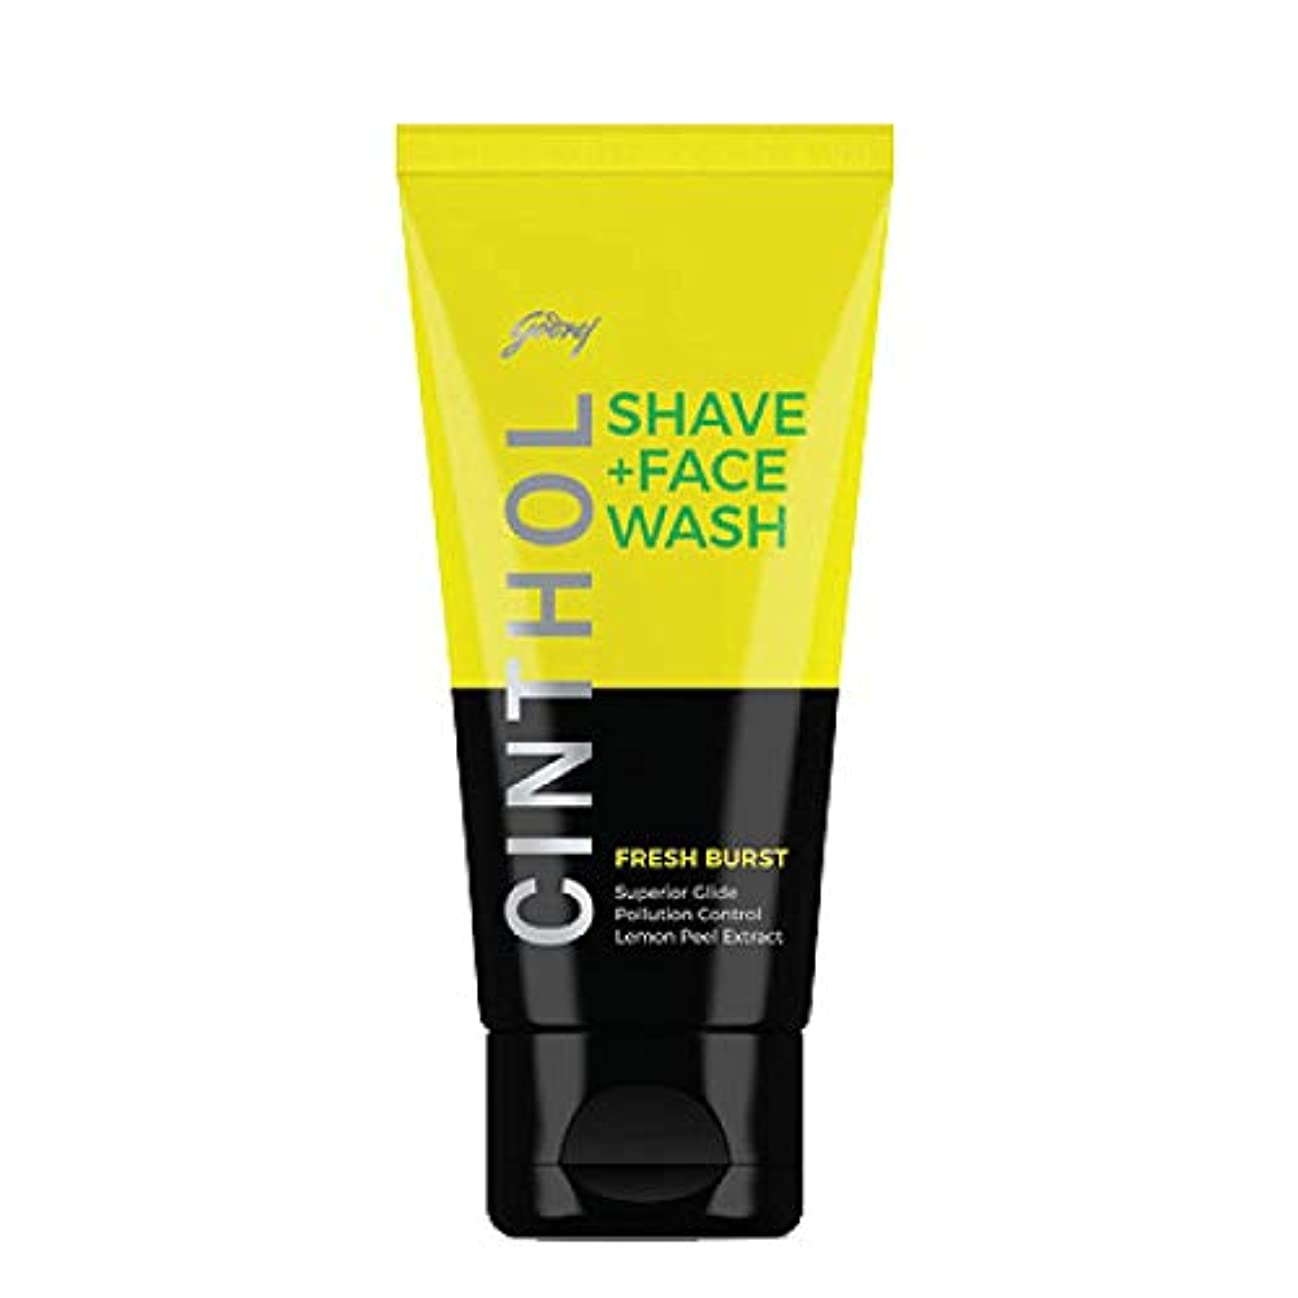 不一致フローティングカロリーCinthol Fresh Burst Shaving + Face Wash, 100g